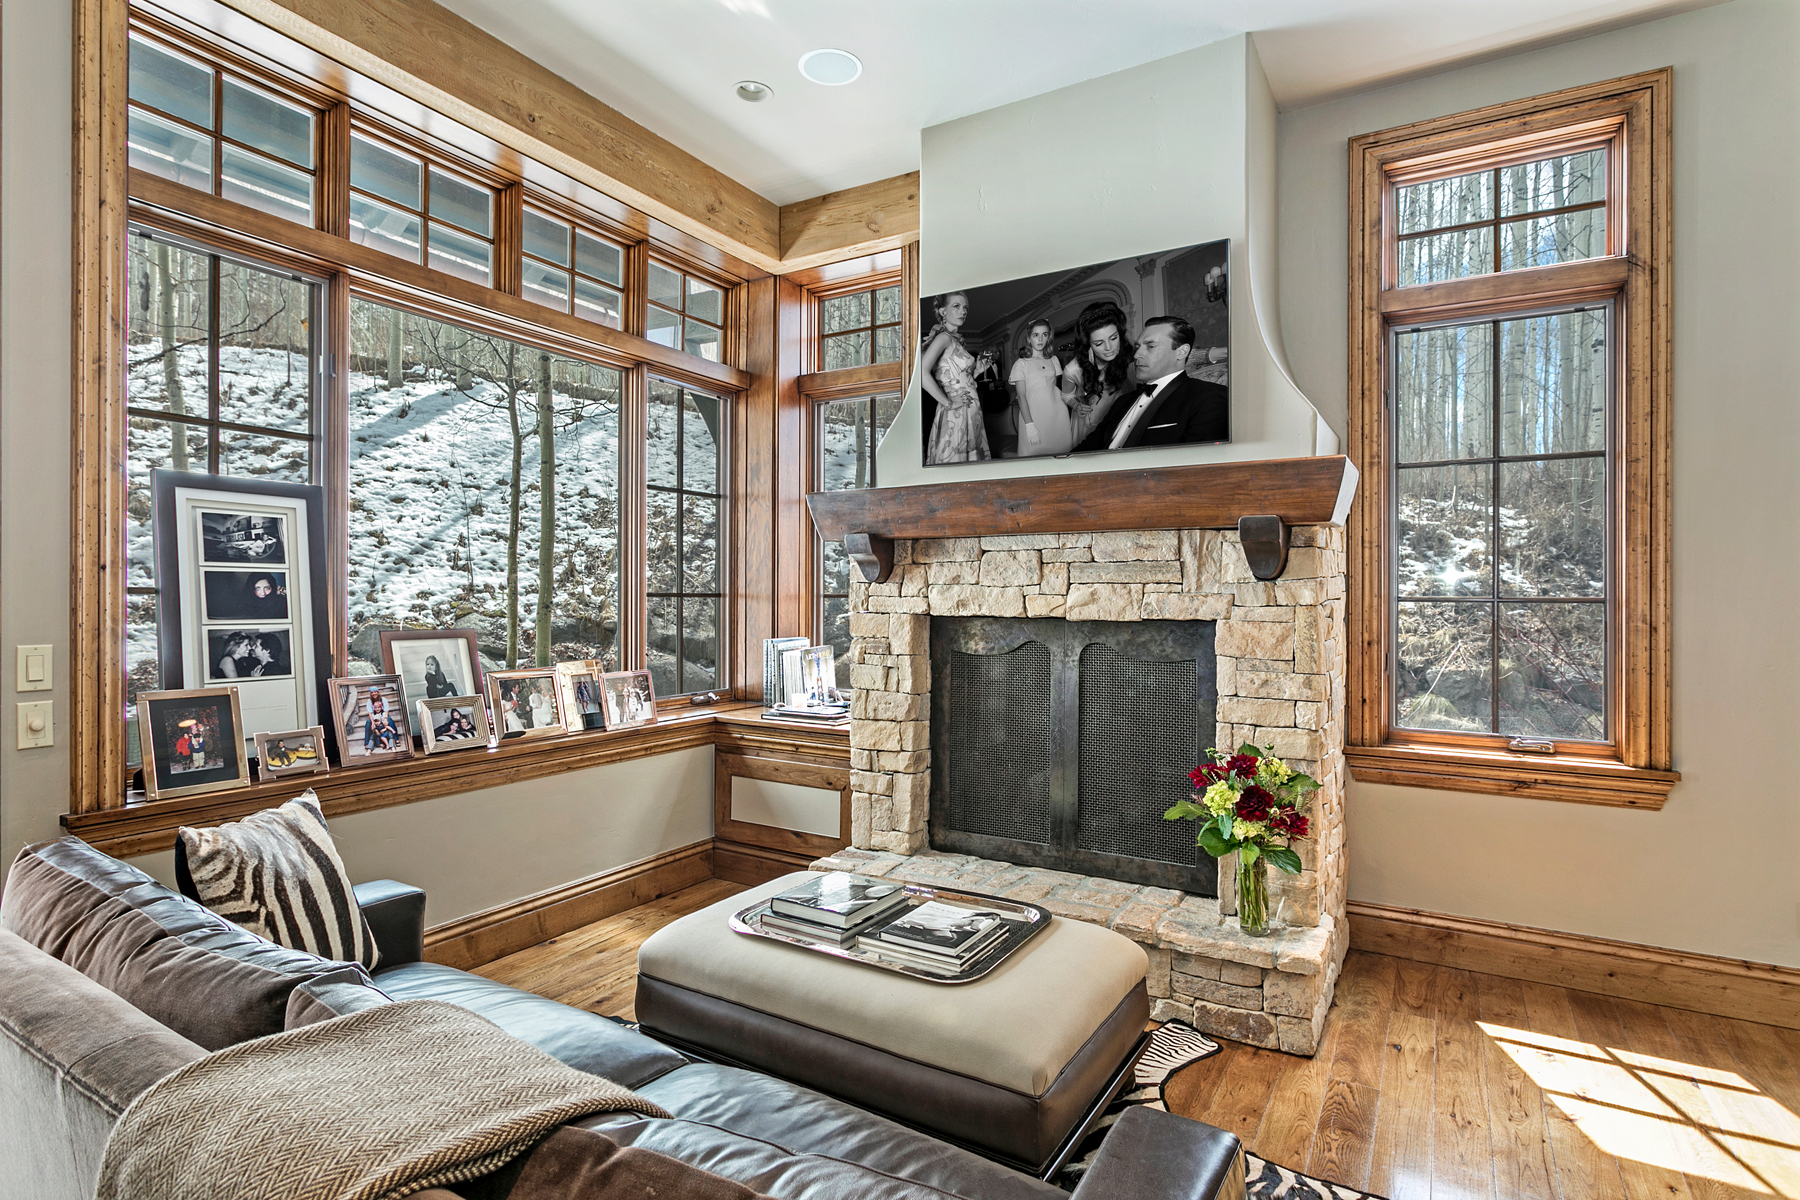 Additional photo for property listing at A Serene Alpine Escape 1518 Spring Hill Lane #W Vail, Colorado 81657 United States